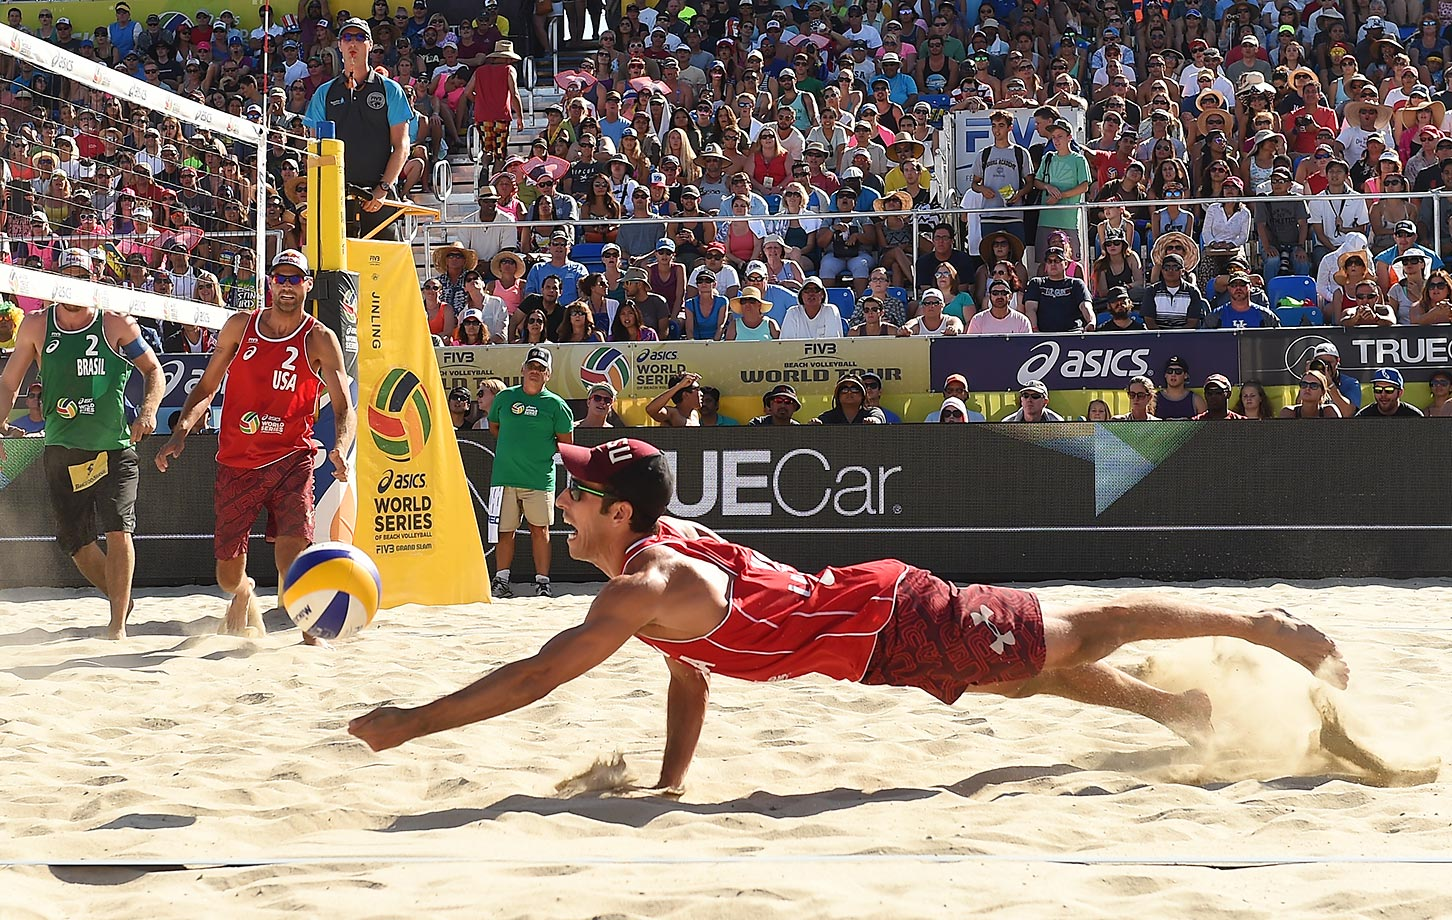 USA's Nick Lucena out flat for a dig in the final.